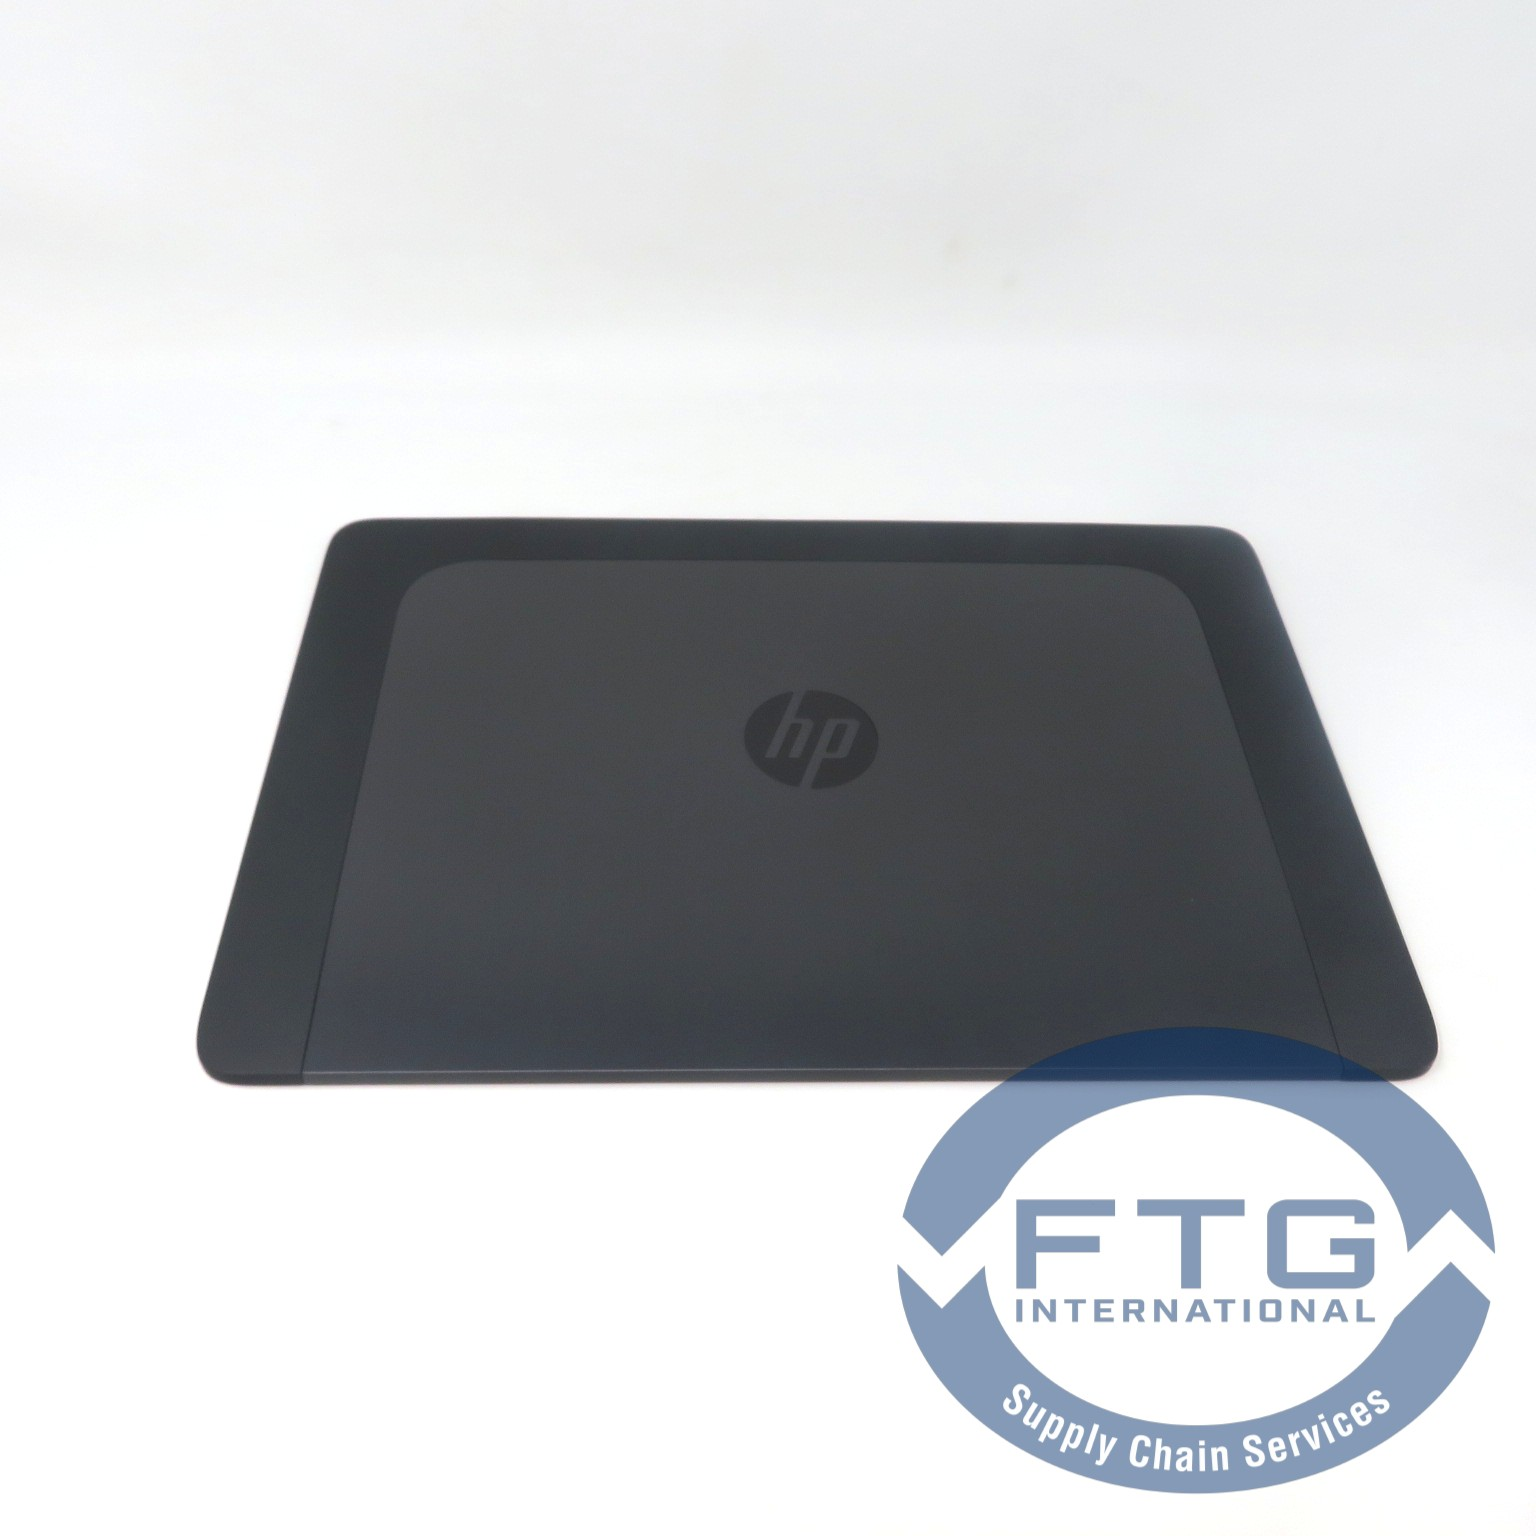 730948-001 D1 Display enclosure For use with ZBook 14 models DENT ON THE COV